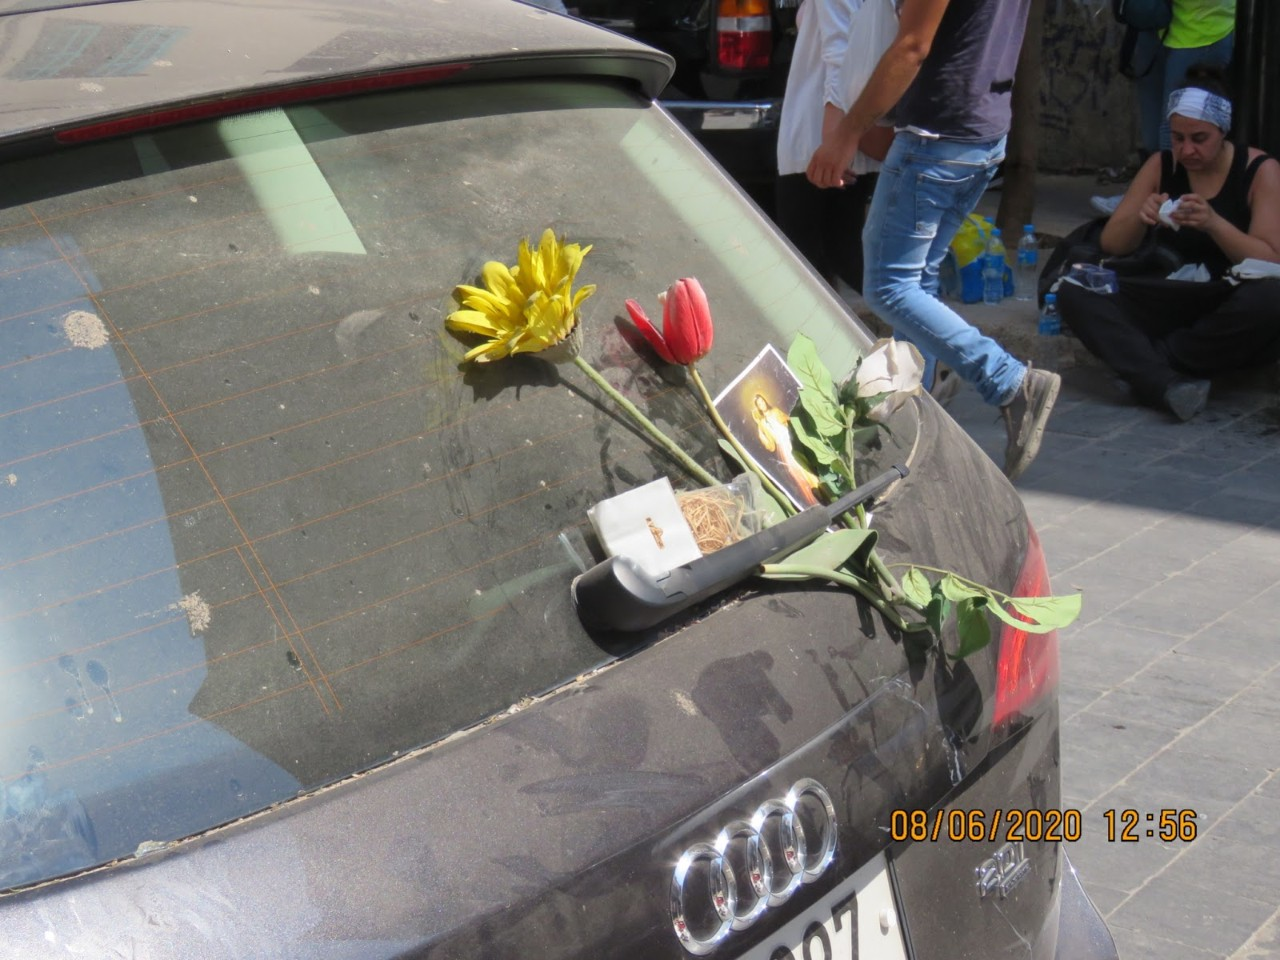 A memorial and prayer placed on the windshield of a car in Gemmayzeh, Lebanon, on August 6, 2020. Gemmayzeh was one of the areas that was severely damaged from the explosion. Photo by Hadil Dia (mindshapedbox)